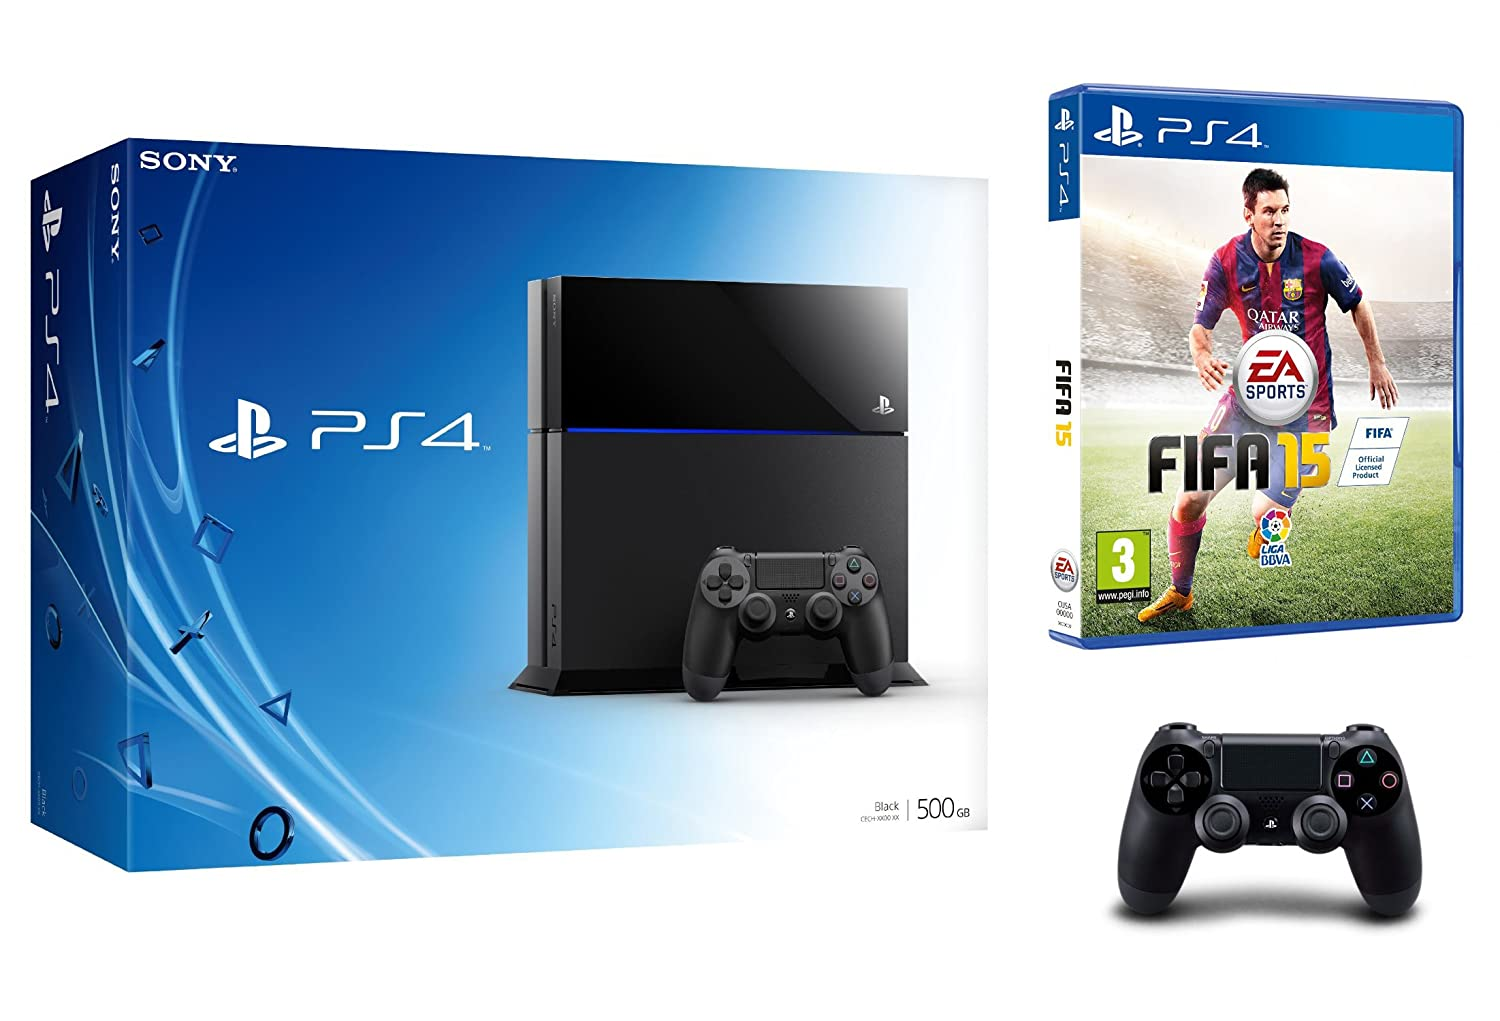 PlayStation 4 - Consola 500 GB (Incluye 2 mandos) + FIFA 15 ...